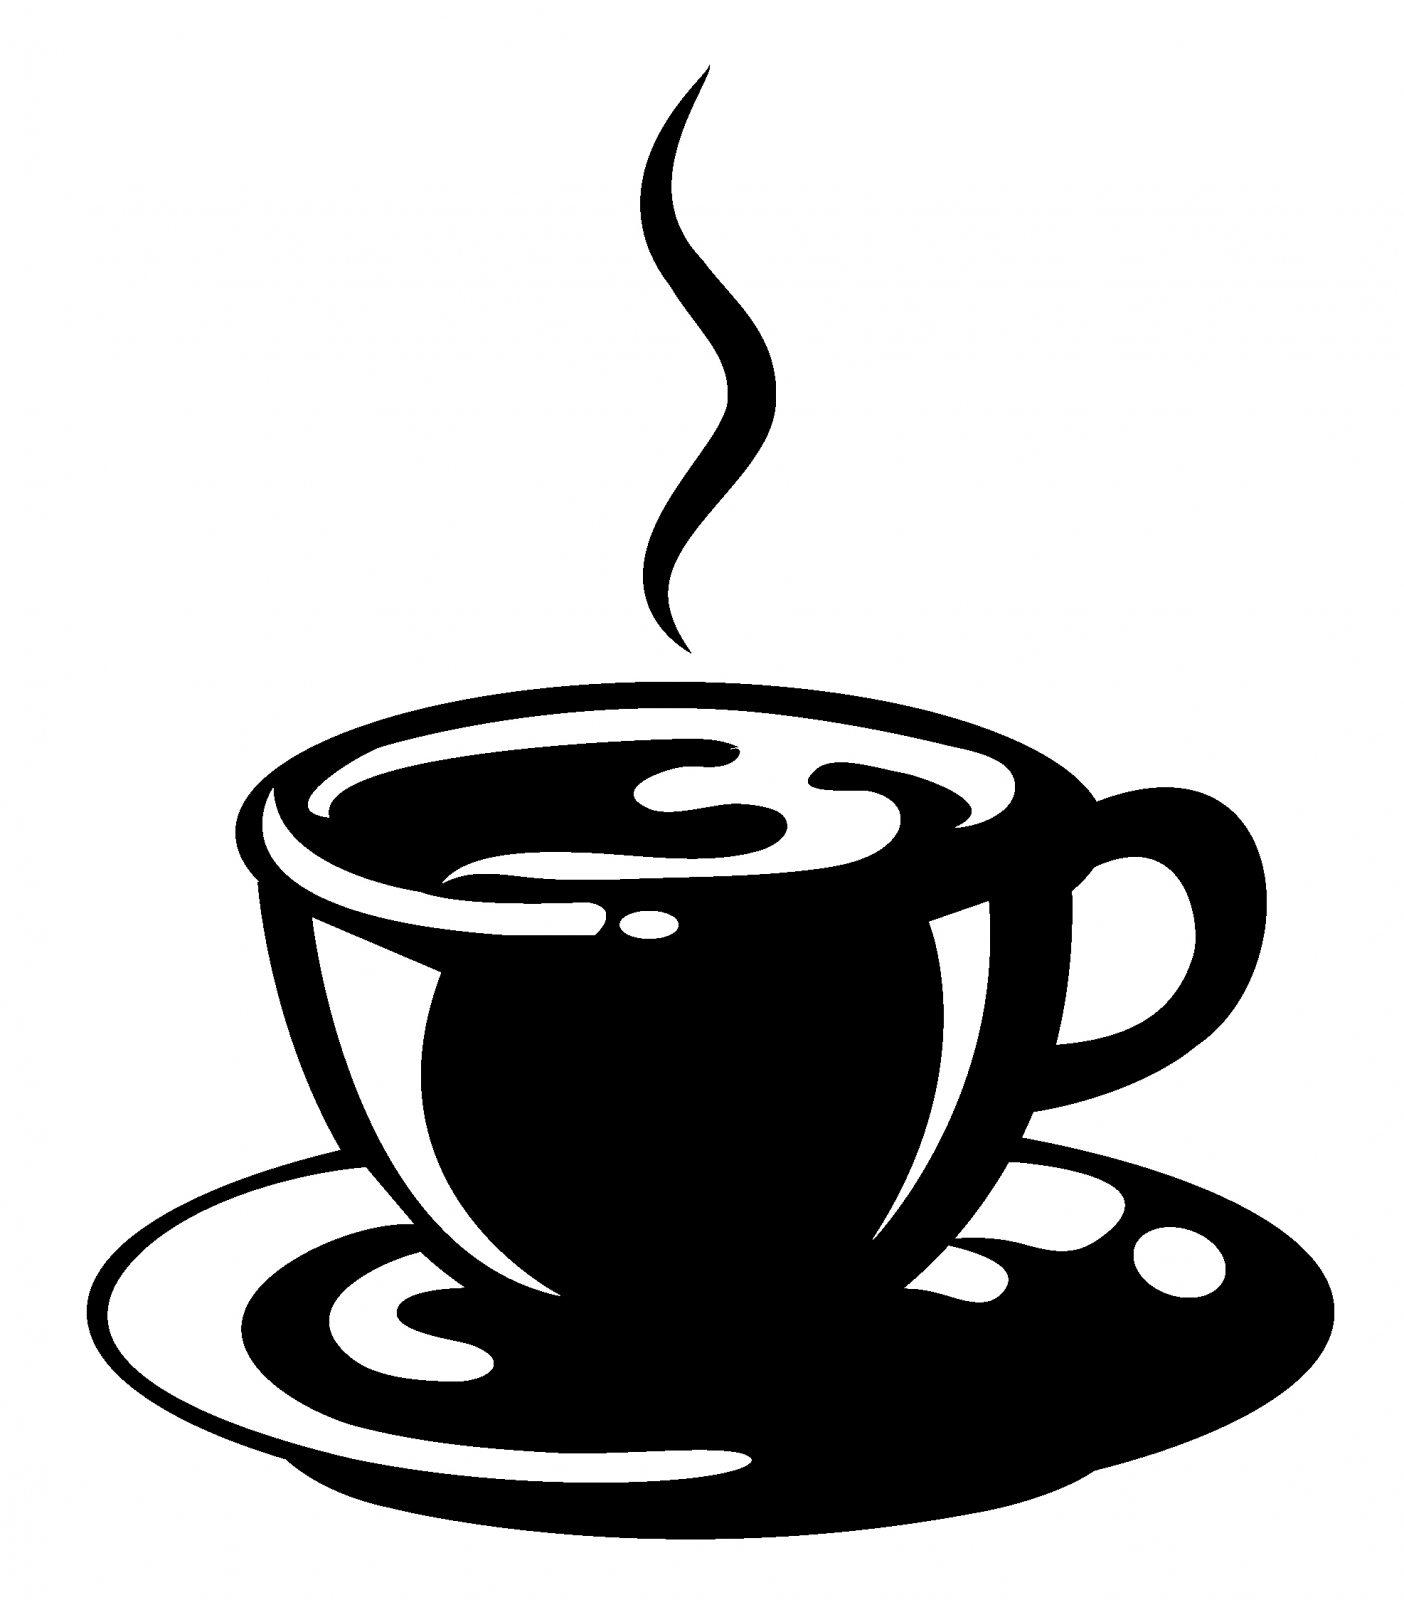 Coffee clipart black and white jpg transparent download Coffee Clipart Black And White | Free download best Coffee Clipart ... jpg transparent download